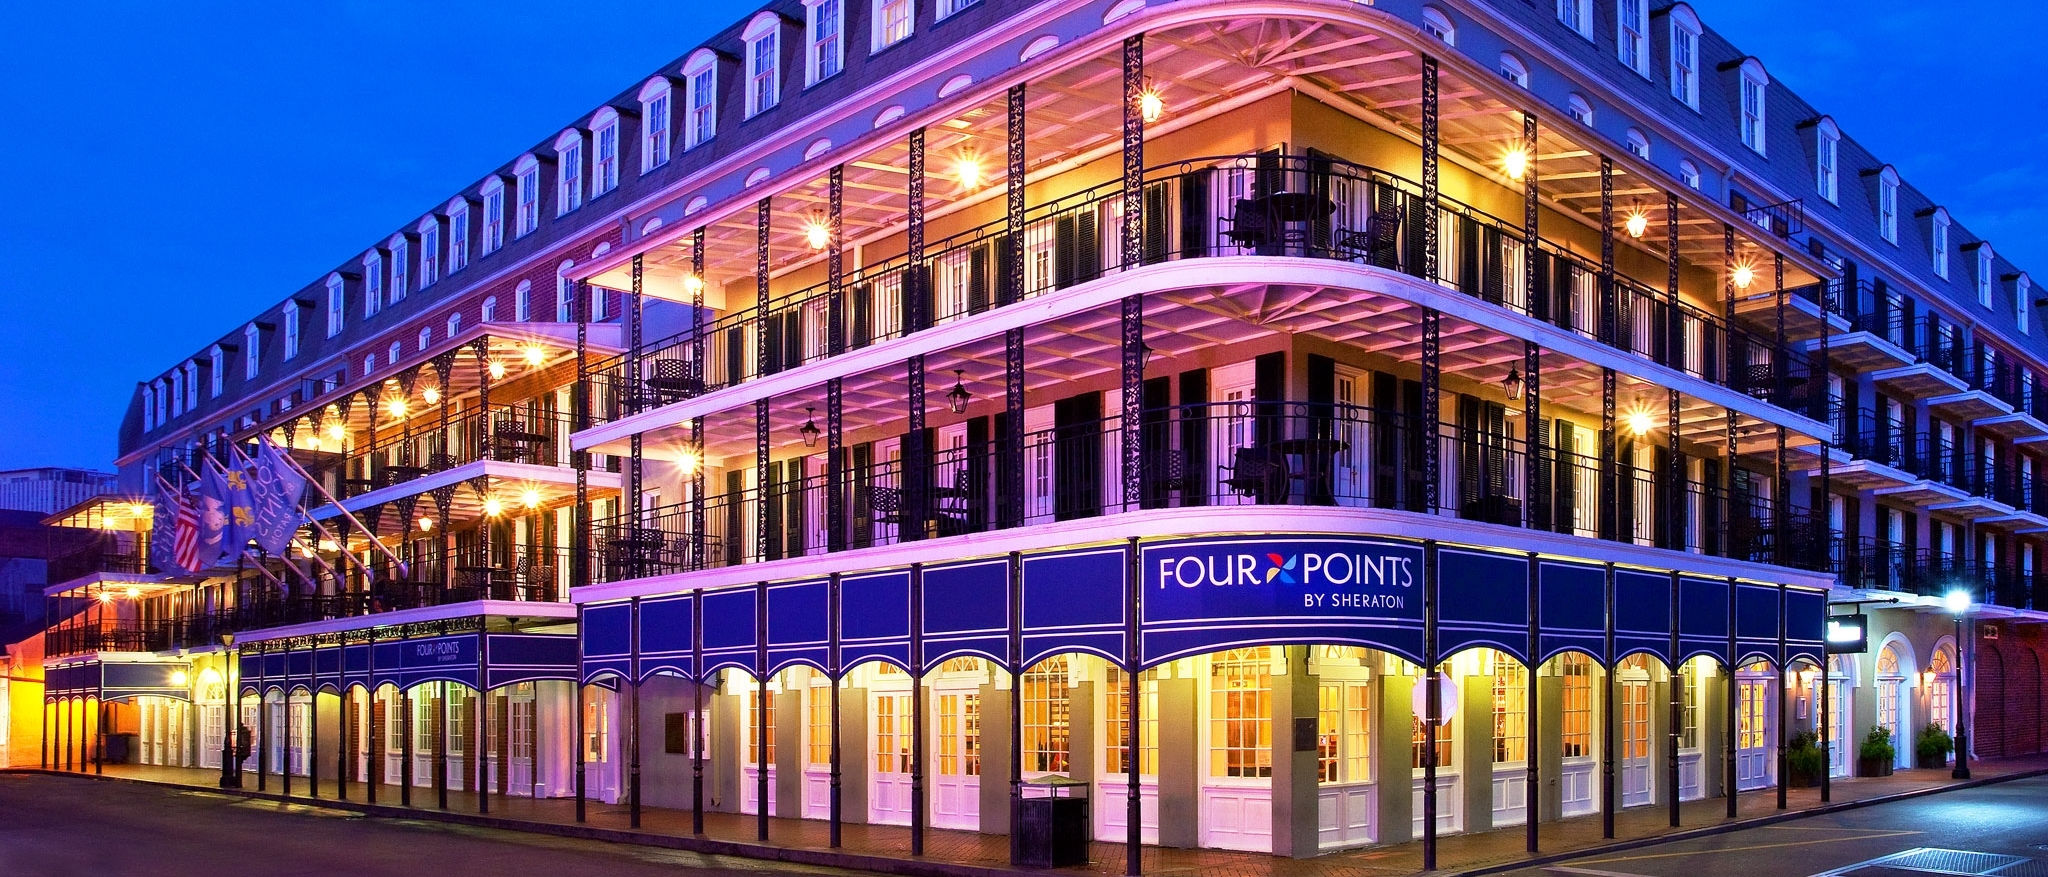 Four Points by Sheraton French Quarter - Hotel Exterior